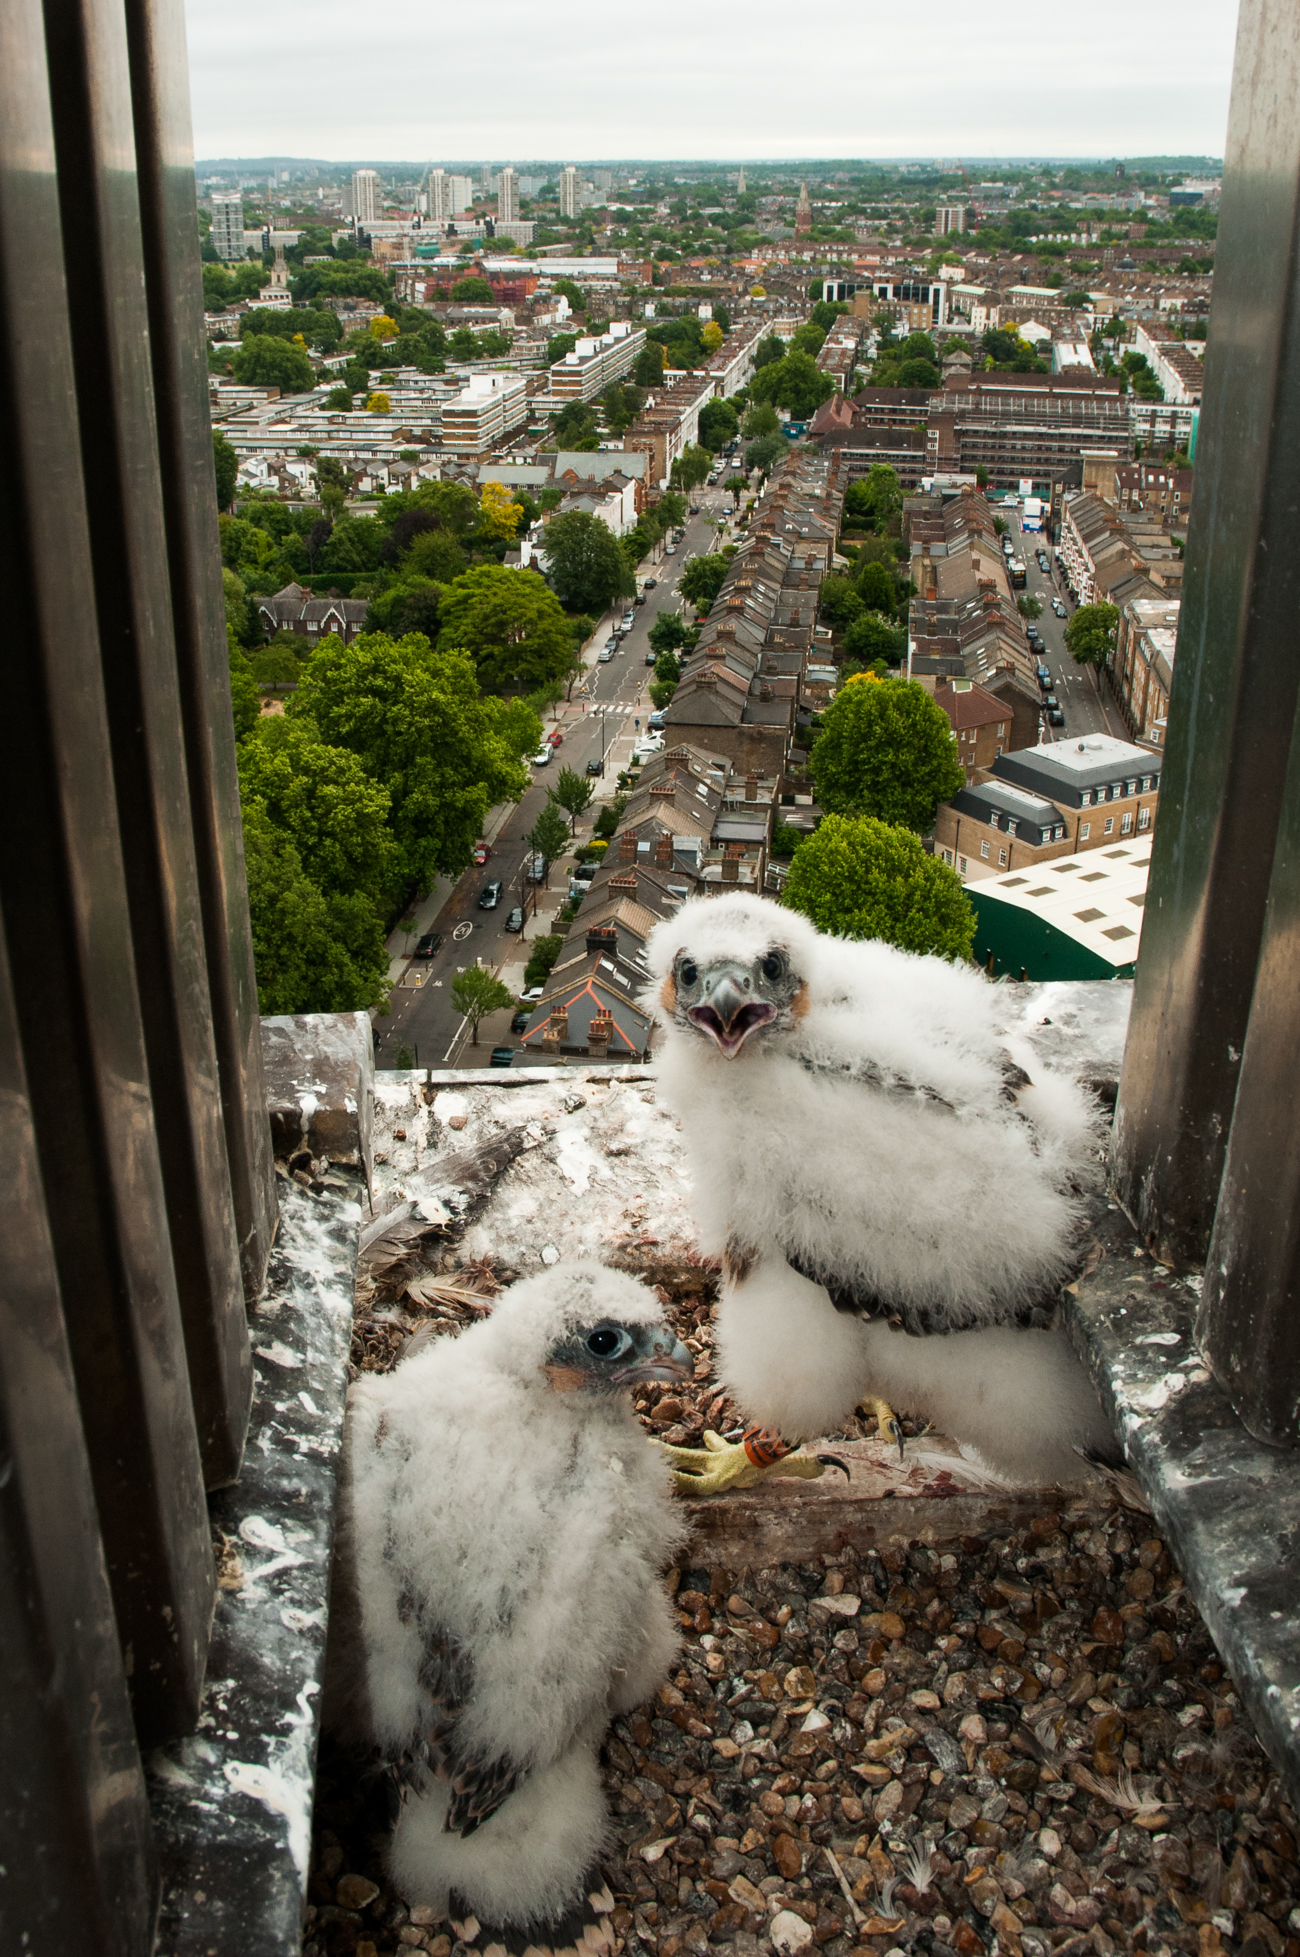 Peregrine falcon chicks in a nest 25-stories up a concrete tower block in central London.